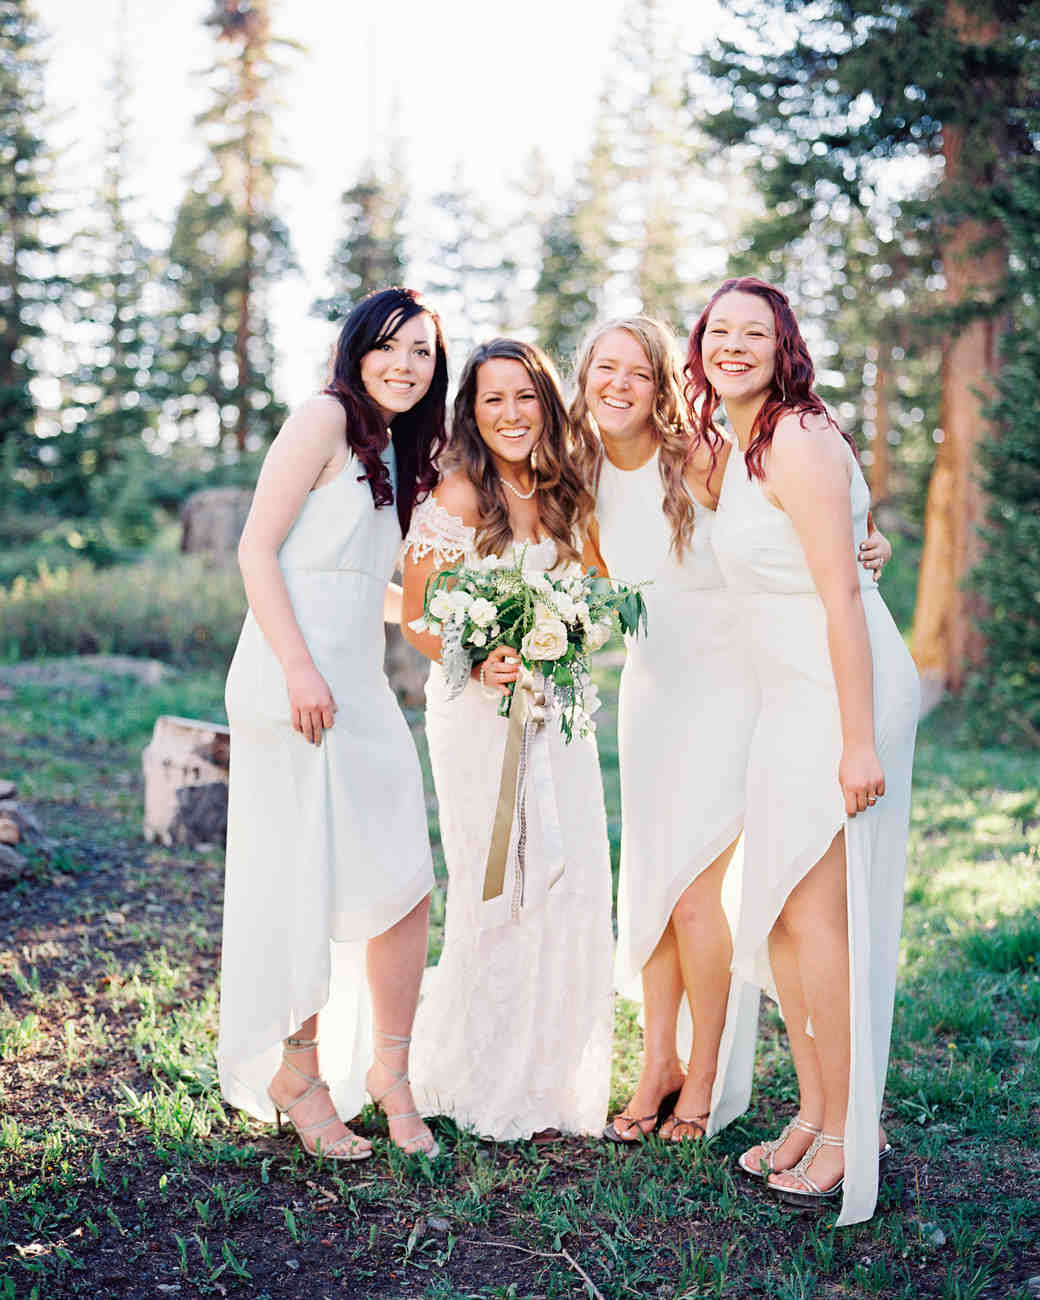 Bridesmaids Wearing White Dresses